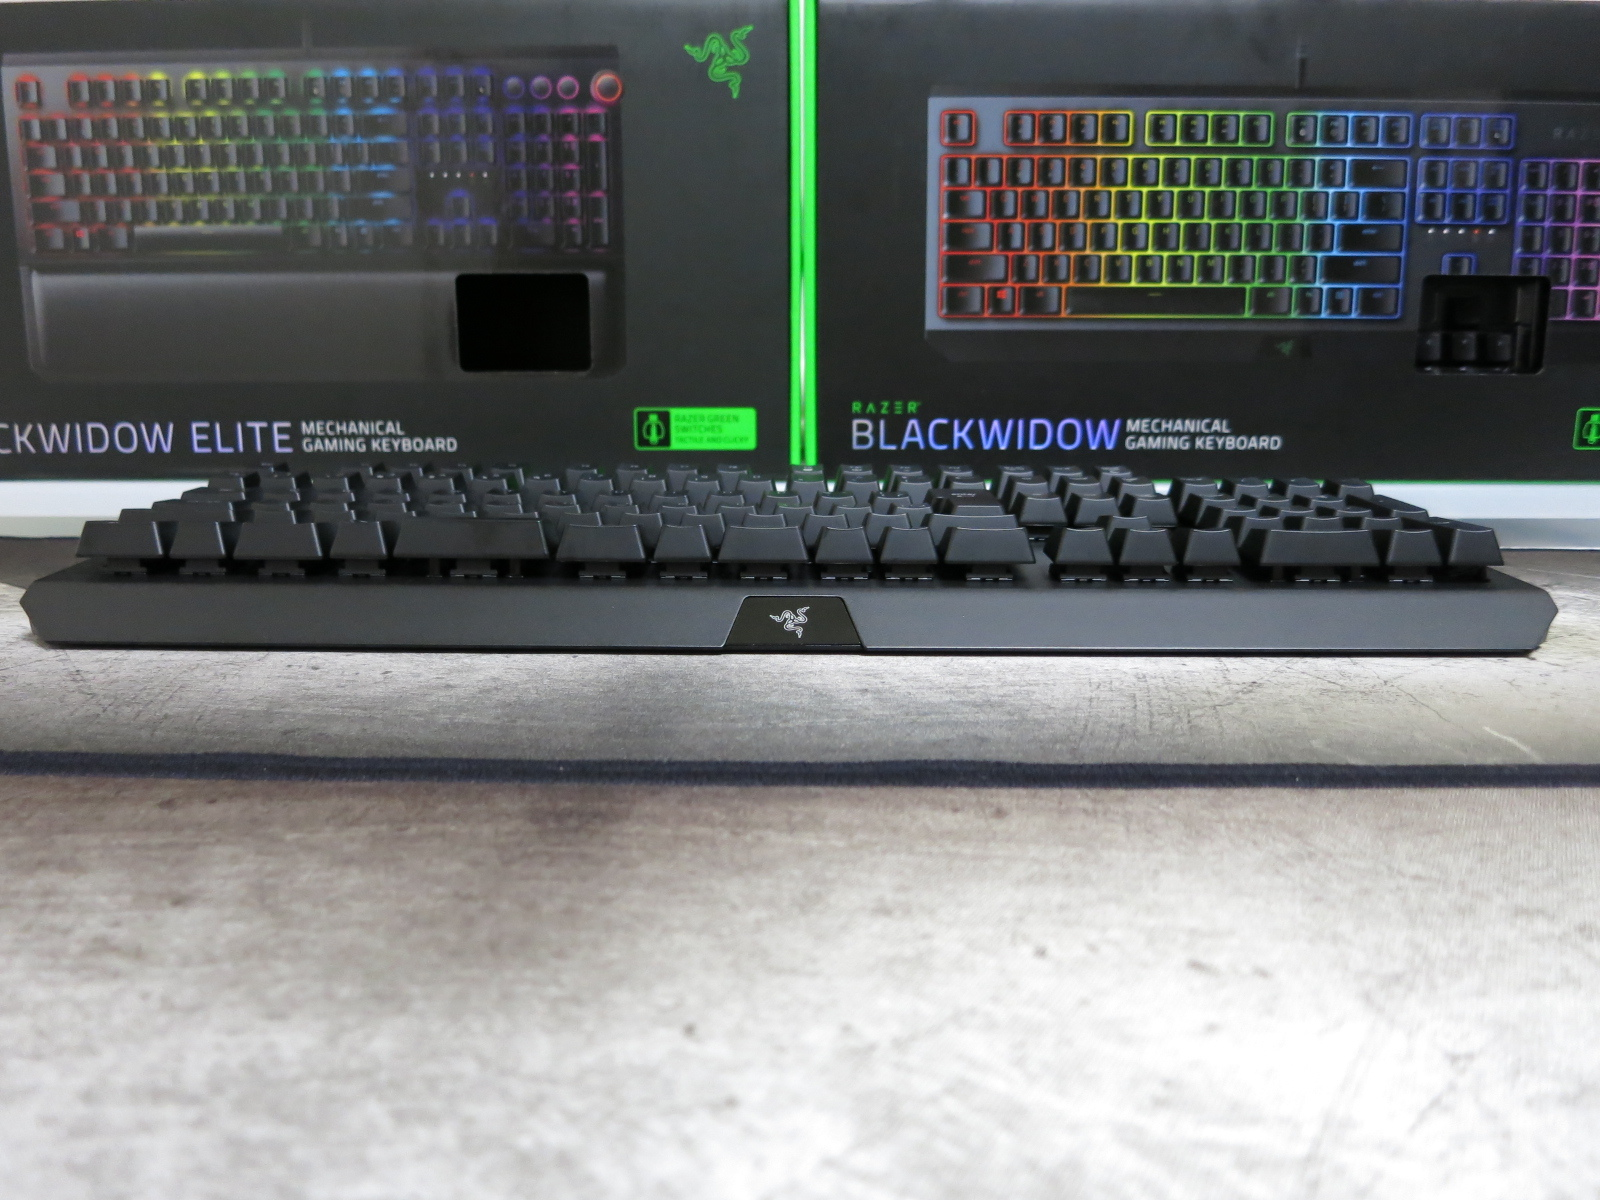 Razer_BlackWidow_Elite_Review_08.jpg